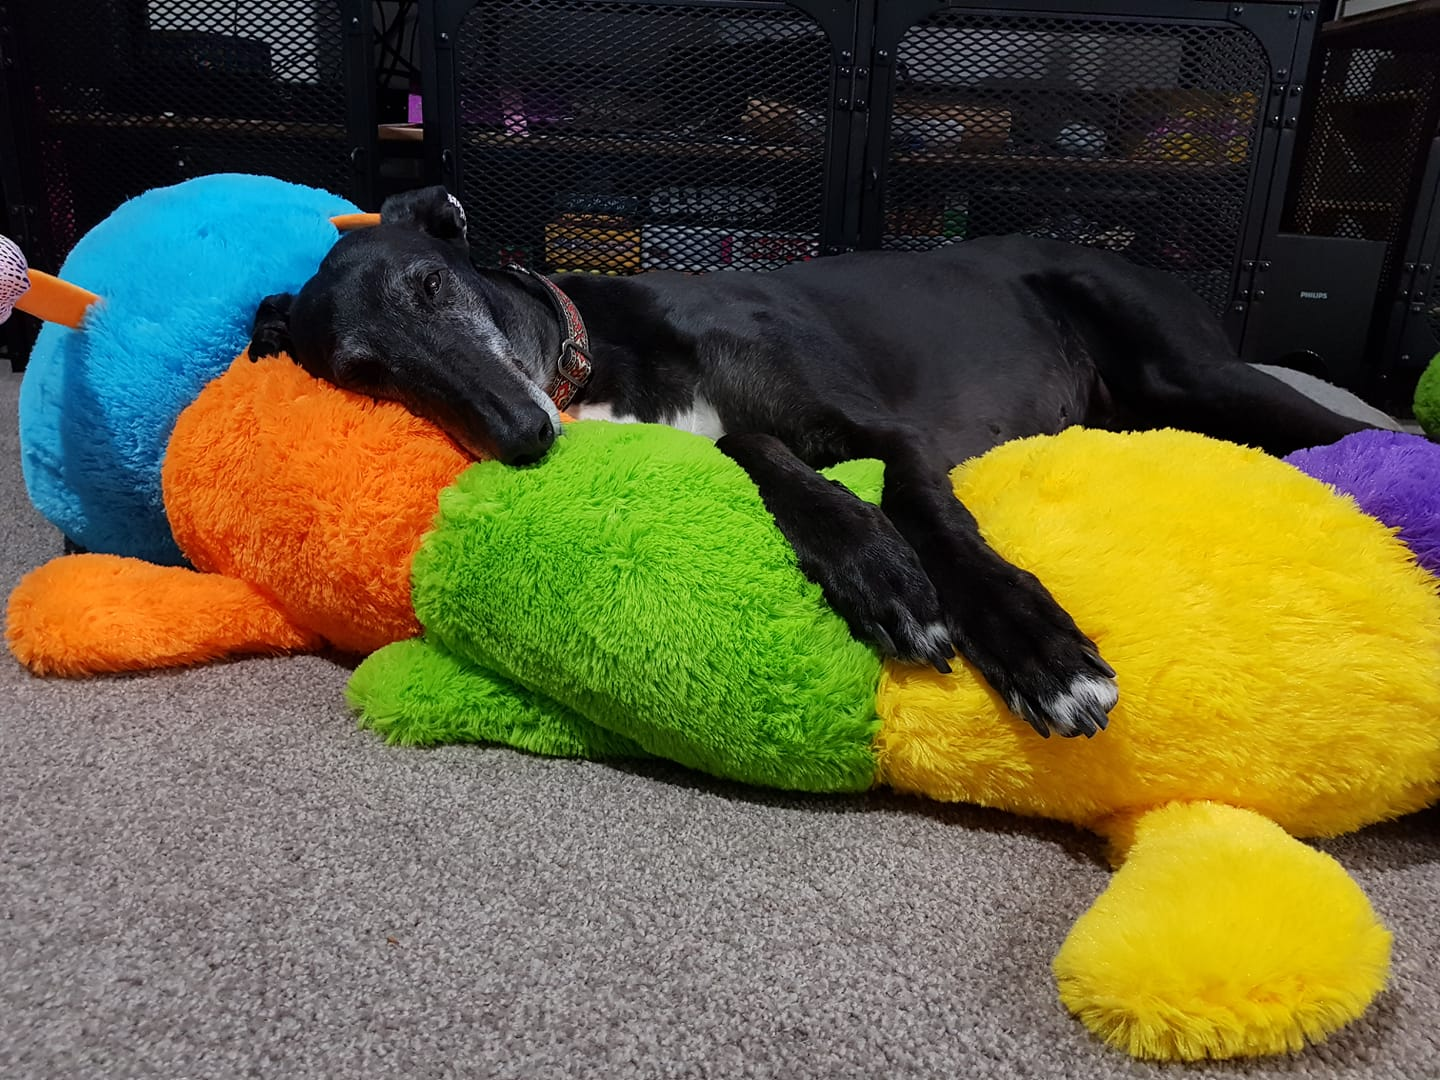 Both Trudy and her Cuddlepillar have found a very happy home.